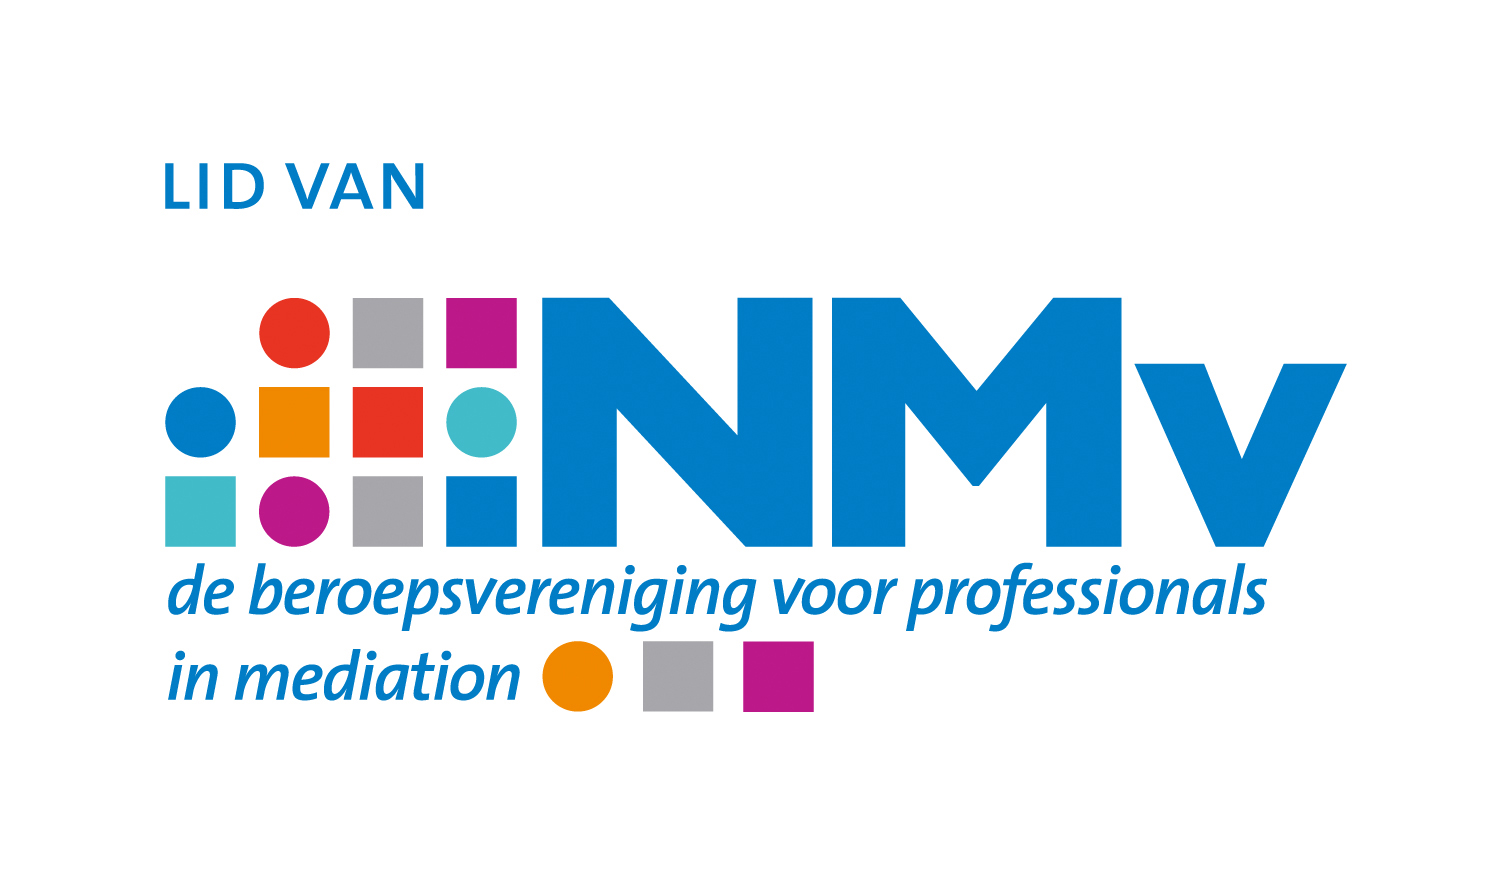 Nederlandse Mediators Vereniging - mediation